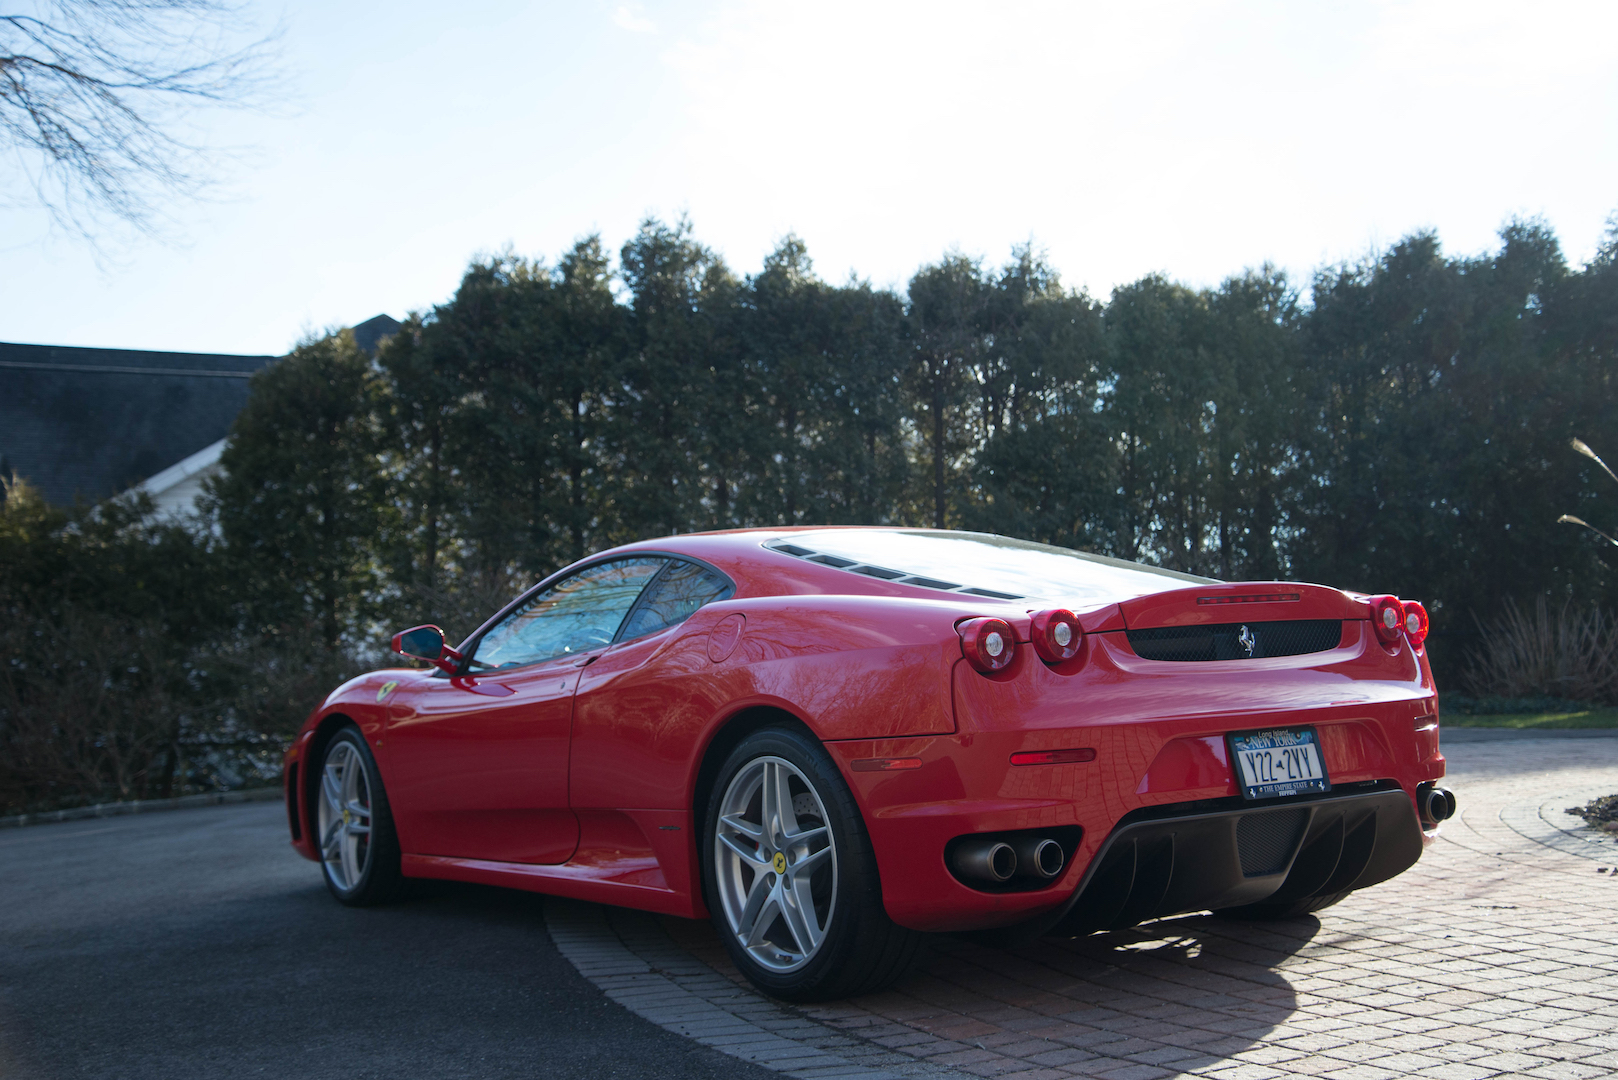 donald trump 39 s ferrari f430 is heading to auction the drive. Black Bedroom Furniture Sets. Home Design Ideas